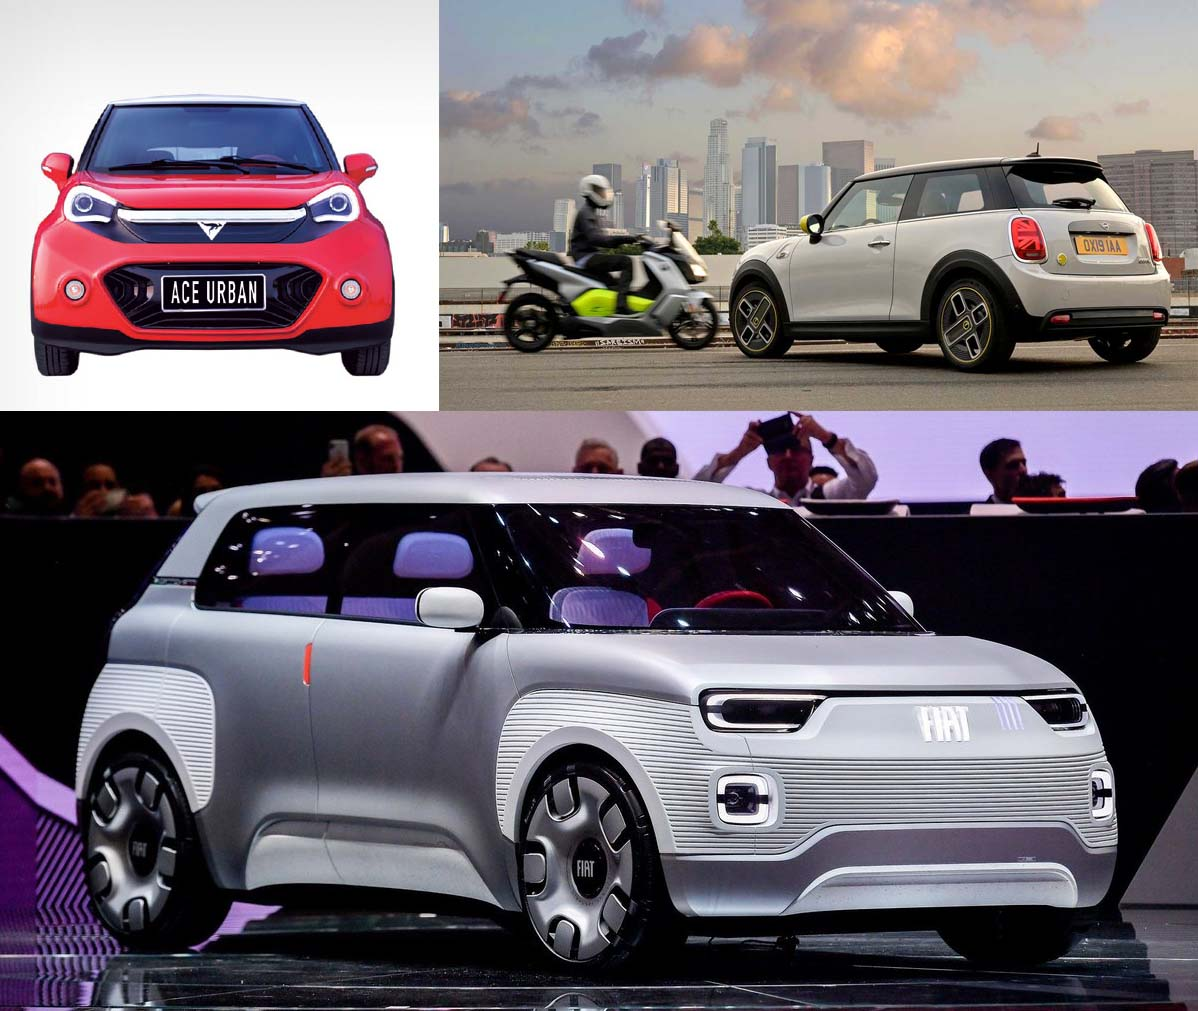 Top 10 Best City Cars For Sale In Australia In 2020-2021